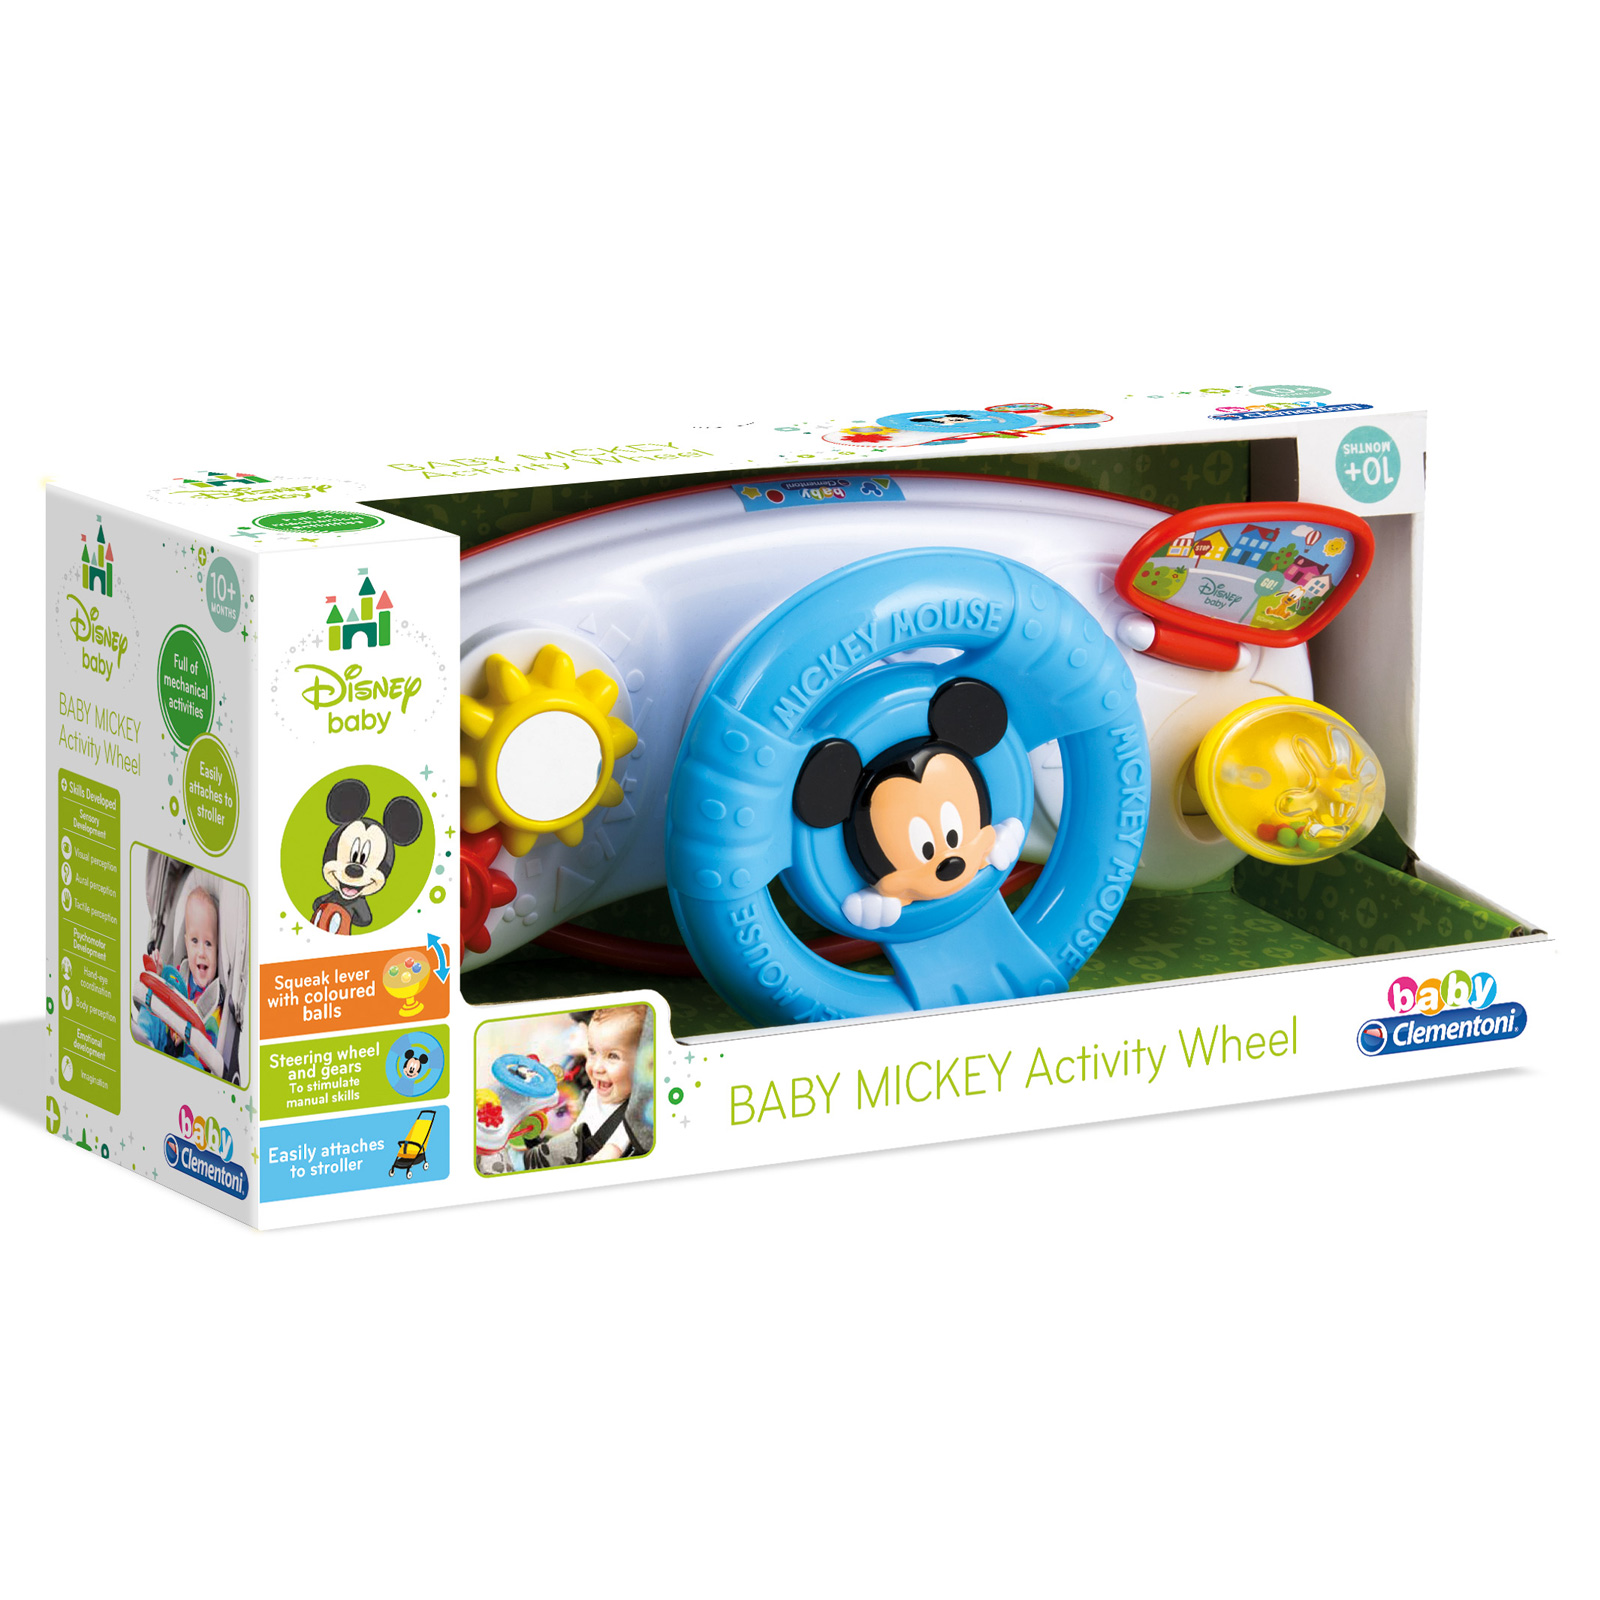 Baby Mickey Mouse Maus Spielzeug Activity Lenkrad Lernspielzeug Babyspielzeug Sonstiges Spielzeug